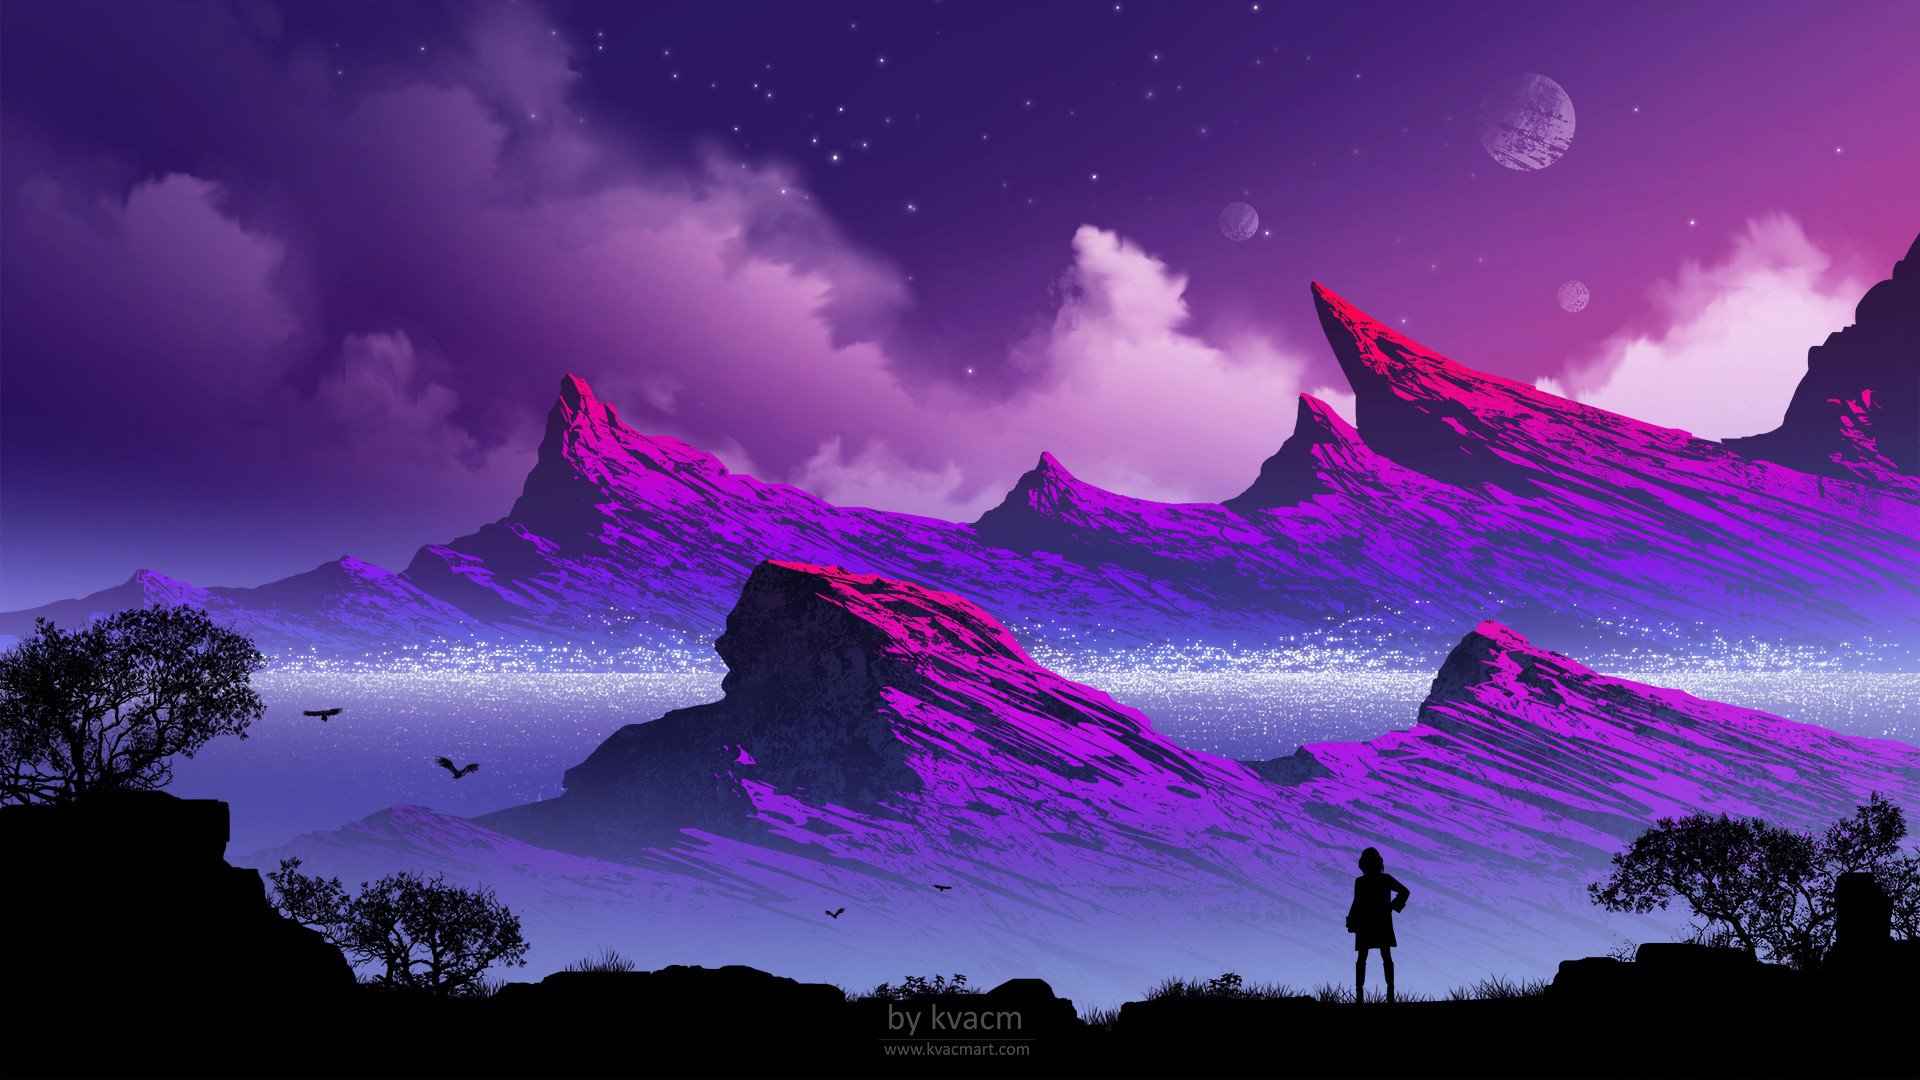 Mountains Person Illustration, HD Artist, 4k Wallpapers, Images, Backgrounds, Photos and Pictures